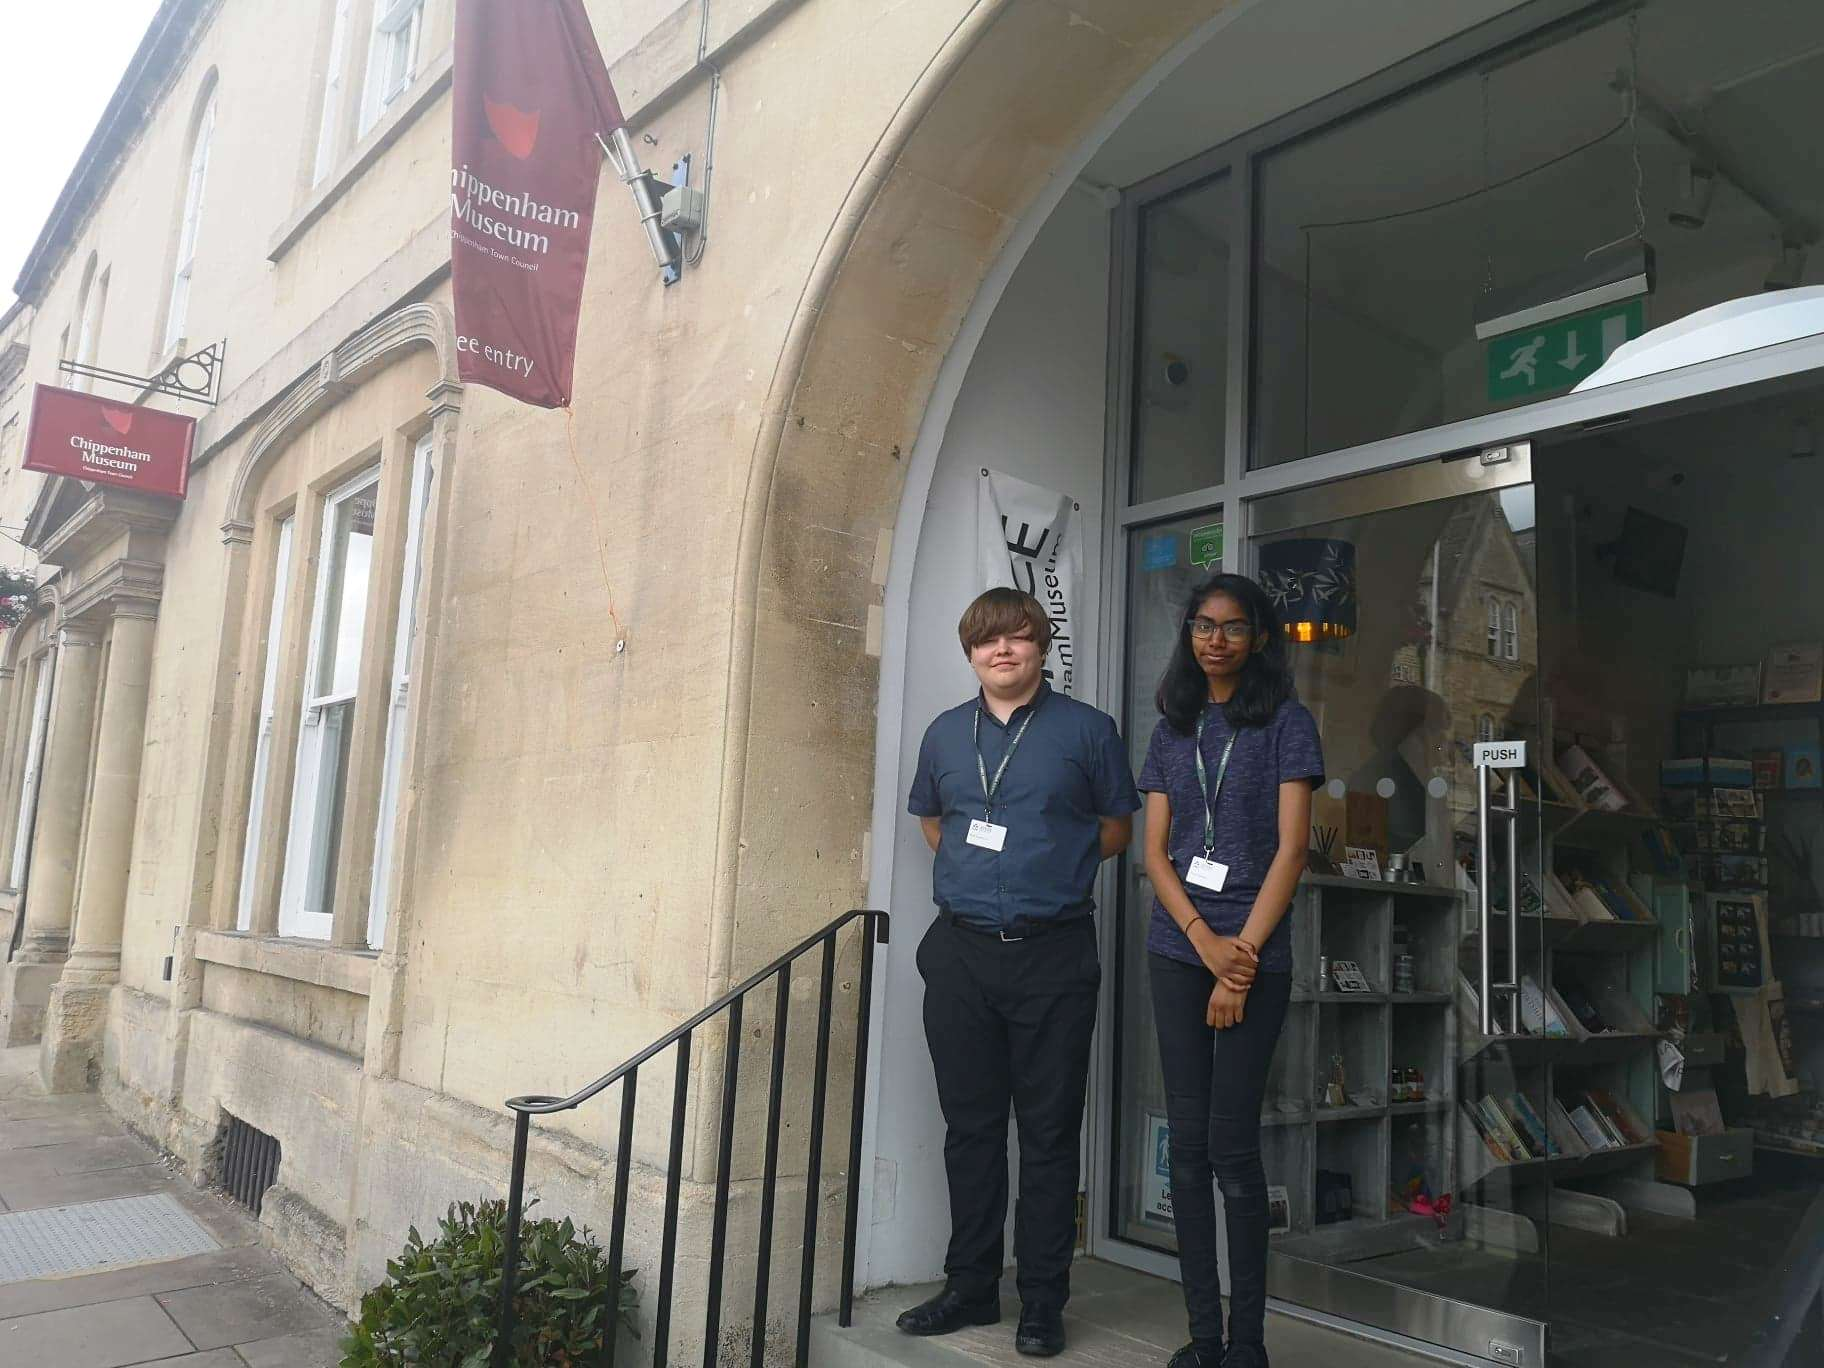 Our Work Experience With Chippenham Museum Chippenham Town